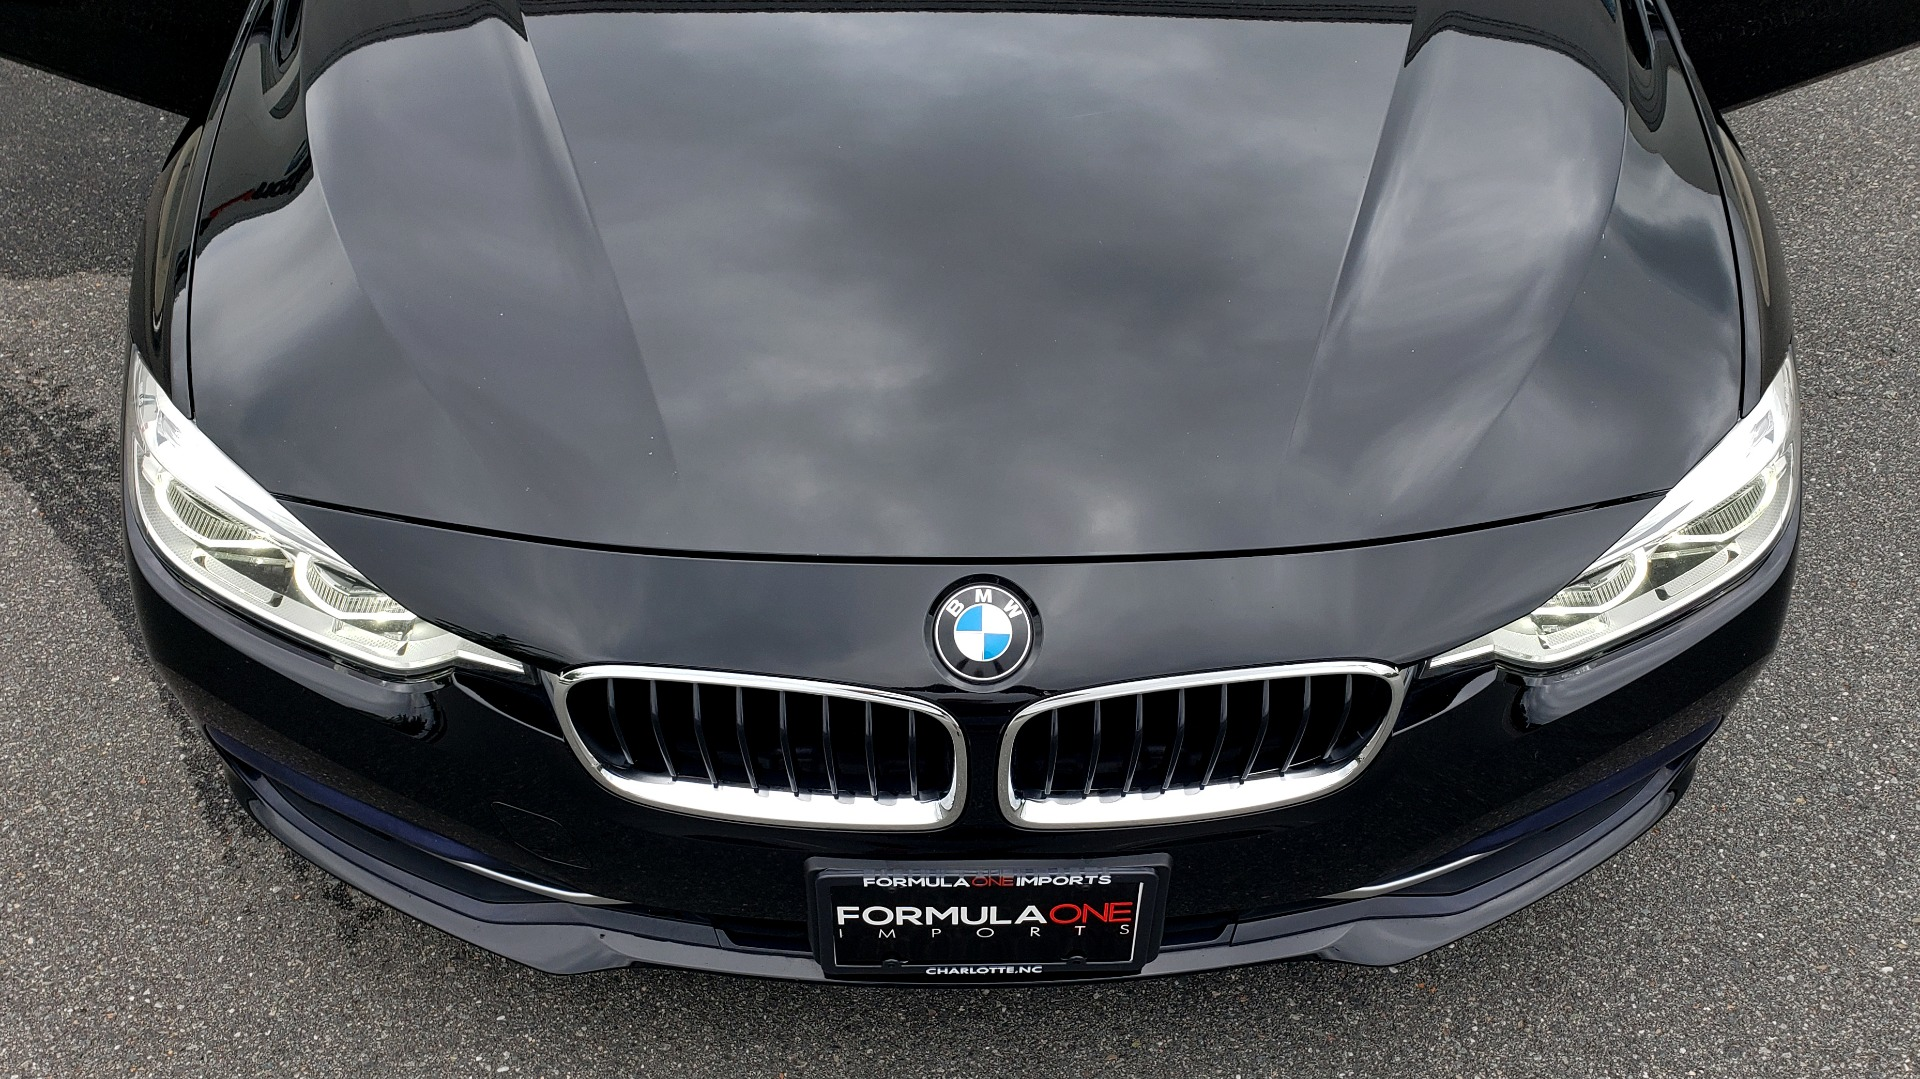 Used 2018 BMW 3 SERIES 330IXDRIVE / CONV PKG / NAV / SUNROOF / HTD STS / REARVIEW for sale $26,552 at Formula Imports in Charlotte NC 28227 22